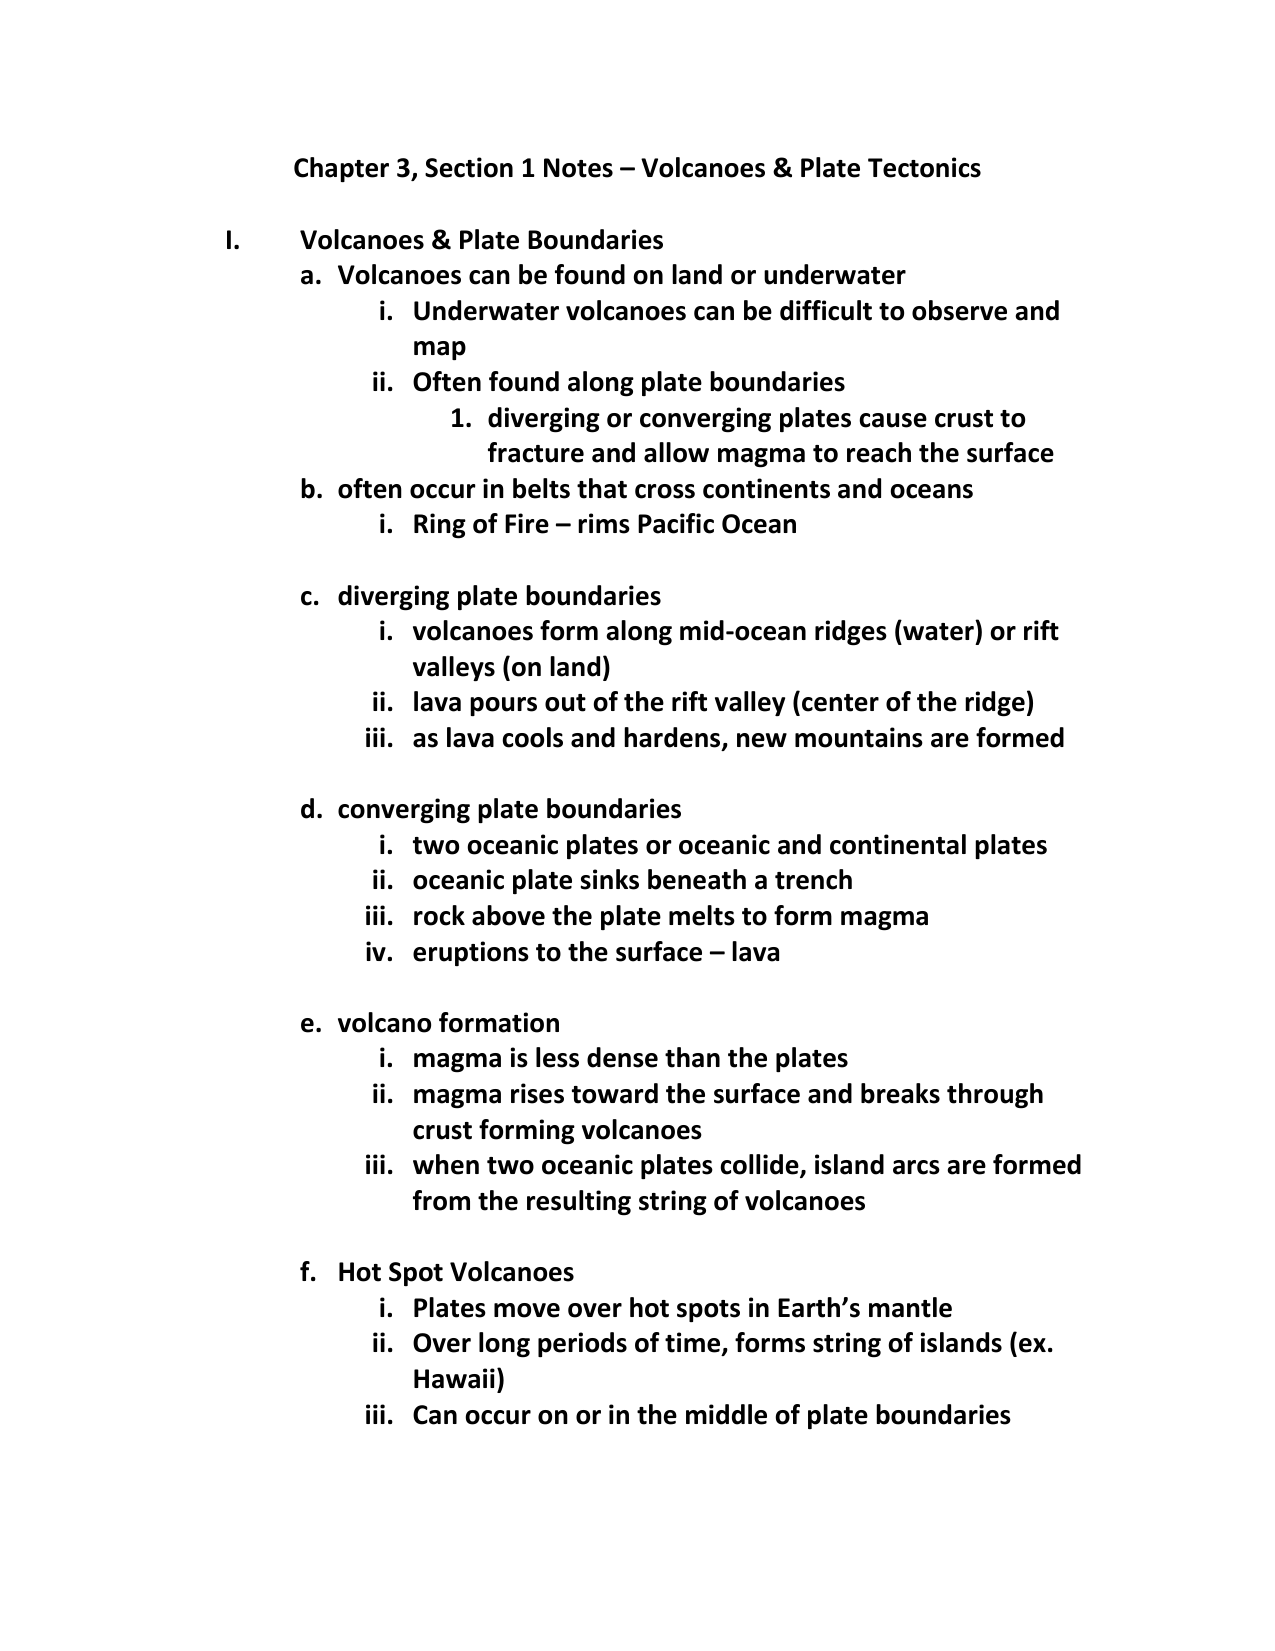 Bill Nye Volcanoes Worksheet Worksheets for Education – Bill Nye Plants Worksheet